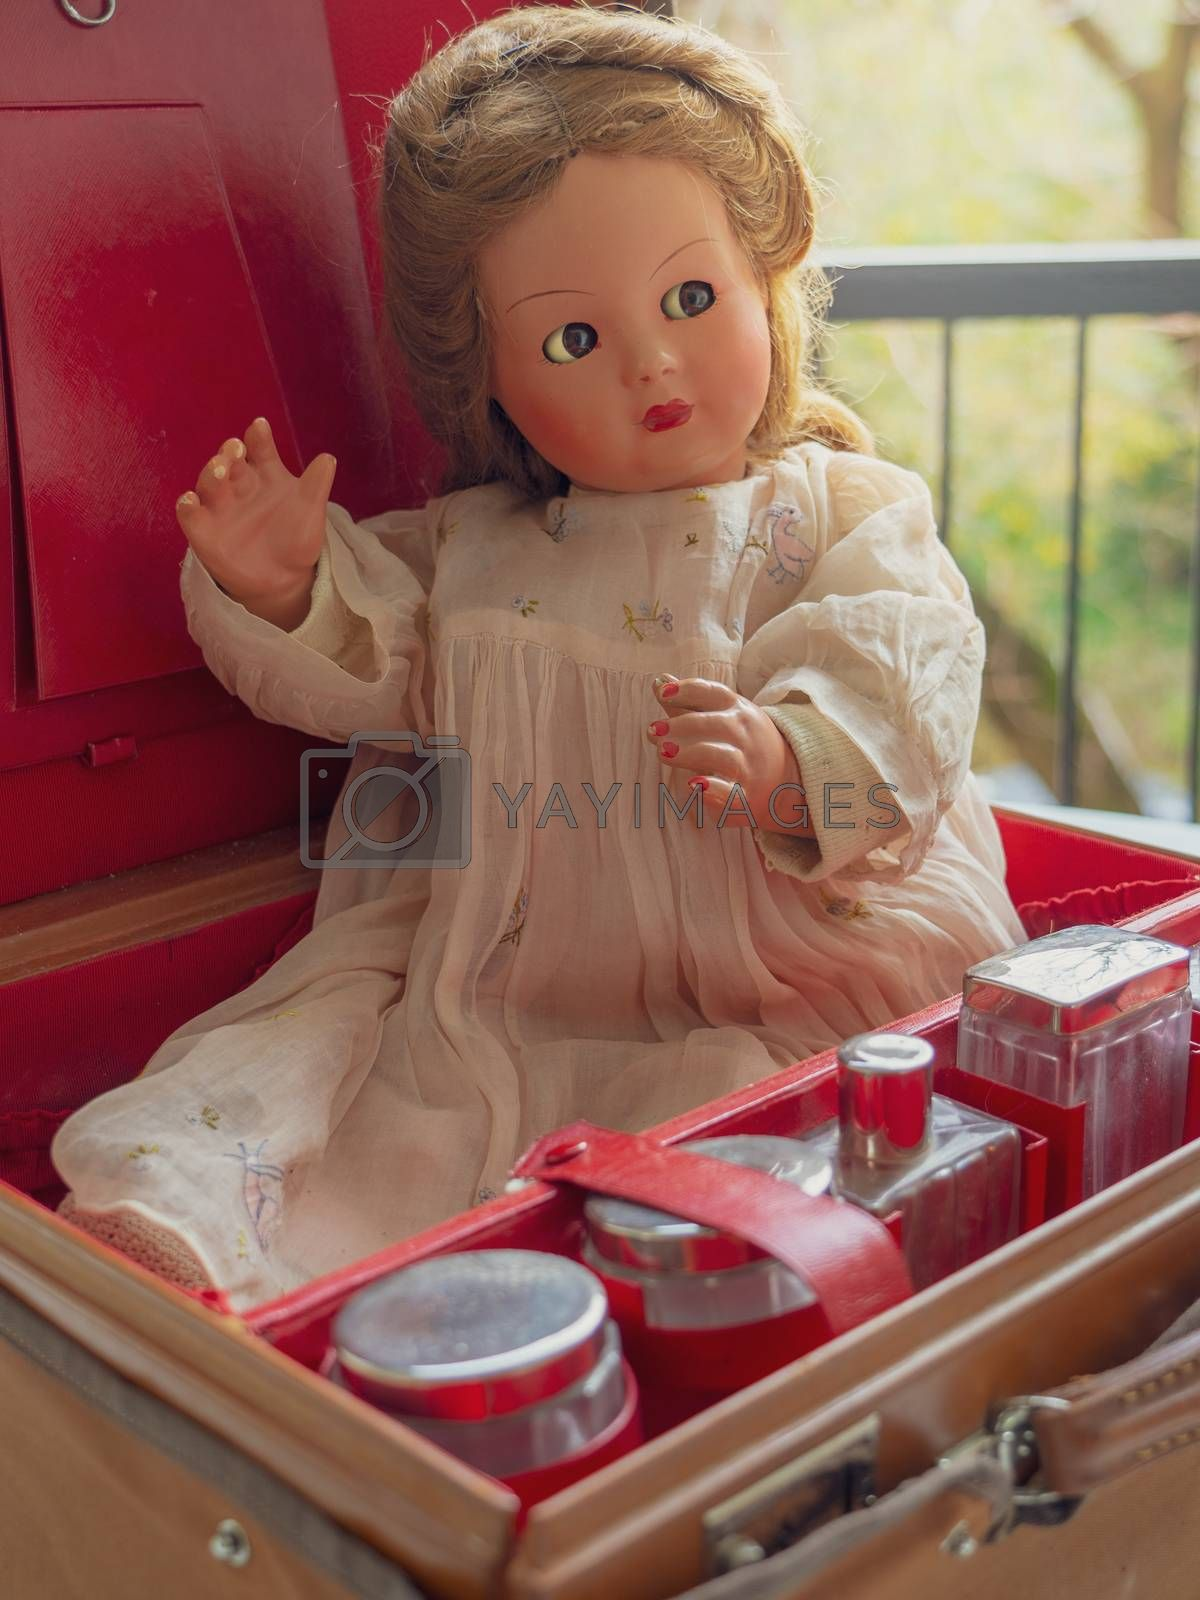 Royalty free image of Vintage doll in a vintage suitcase. by maramade